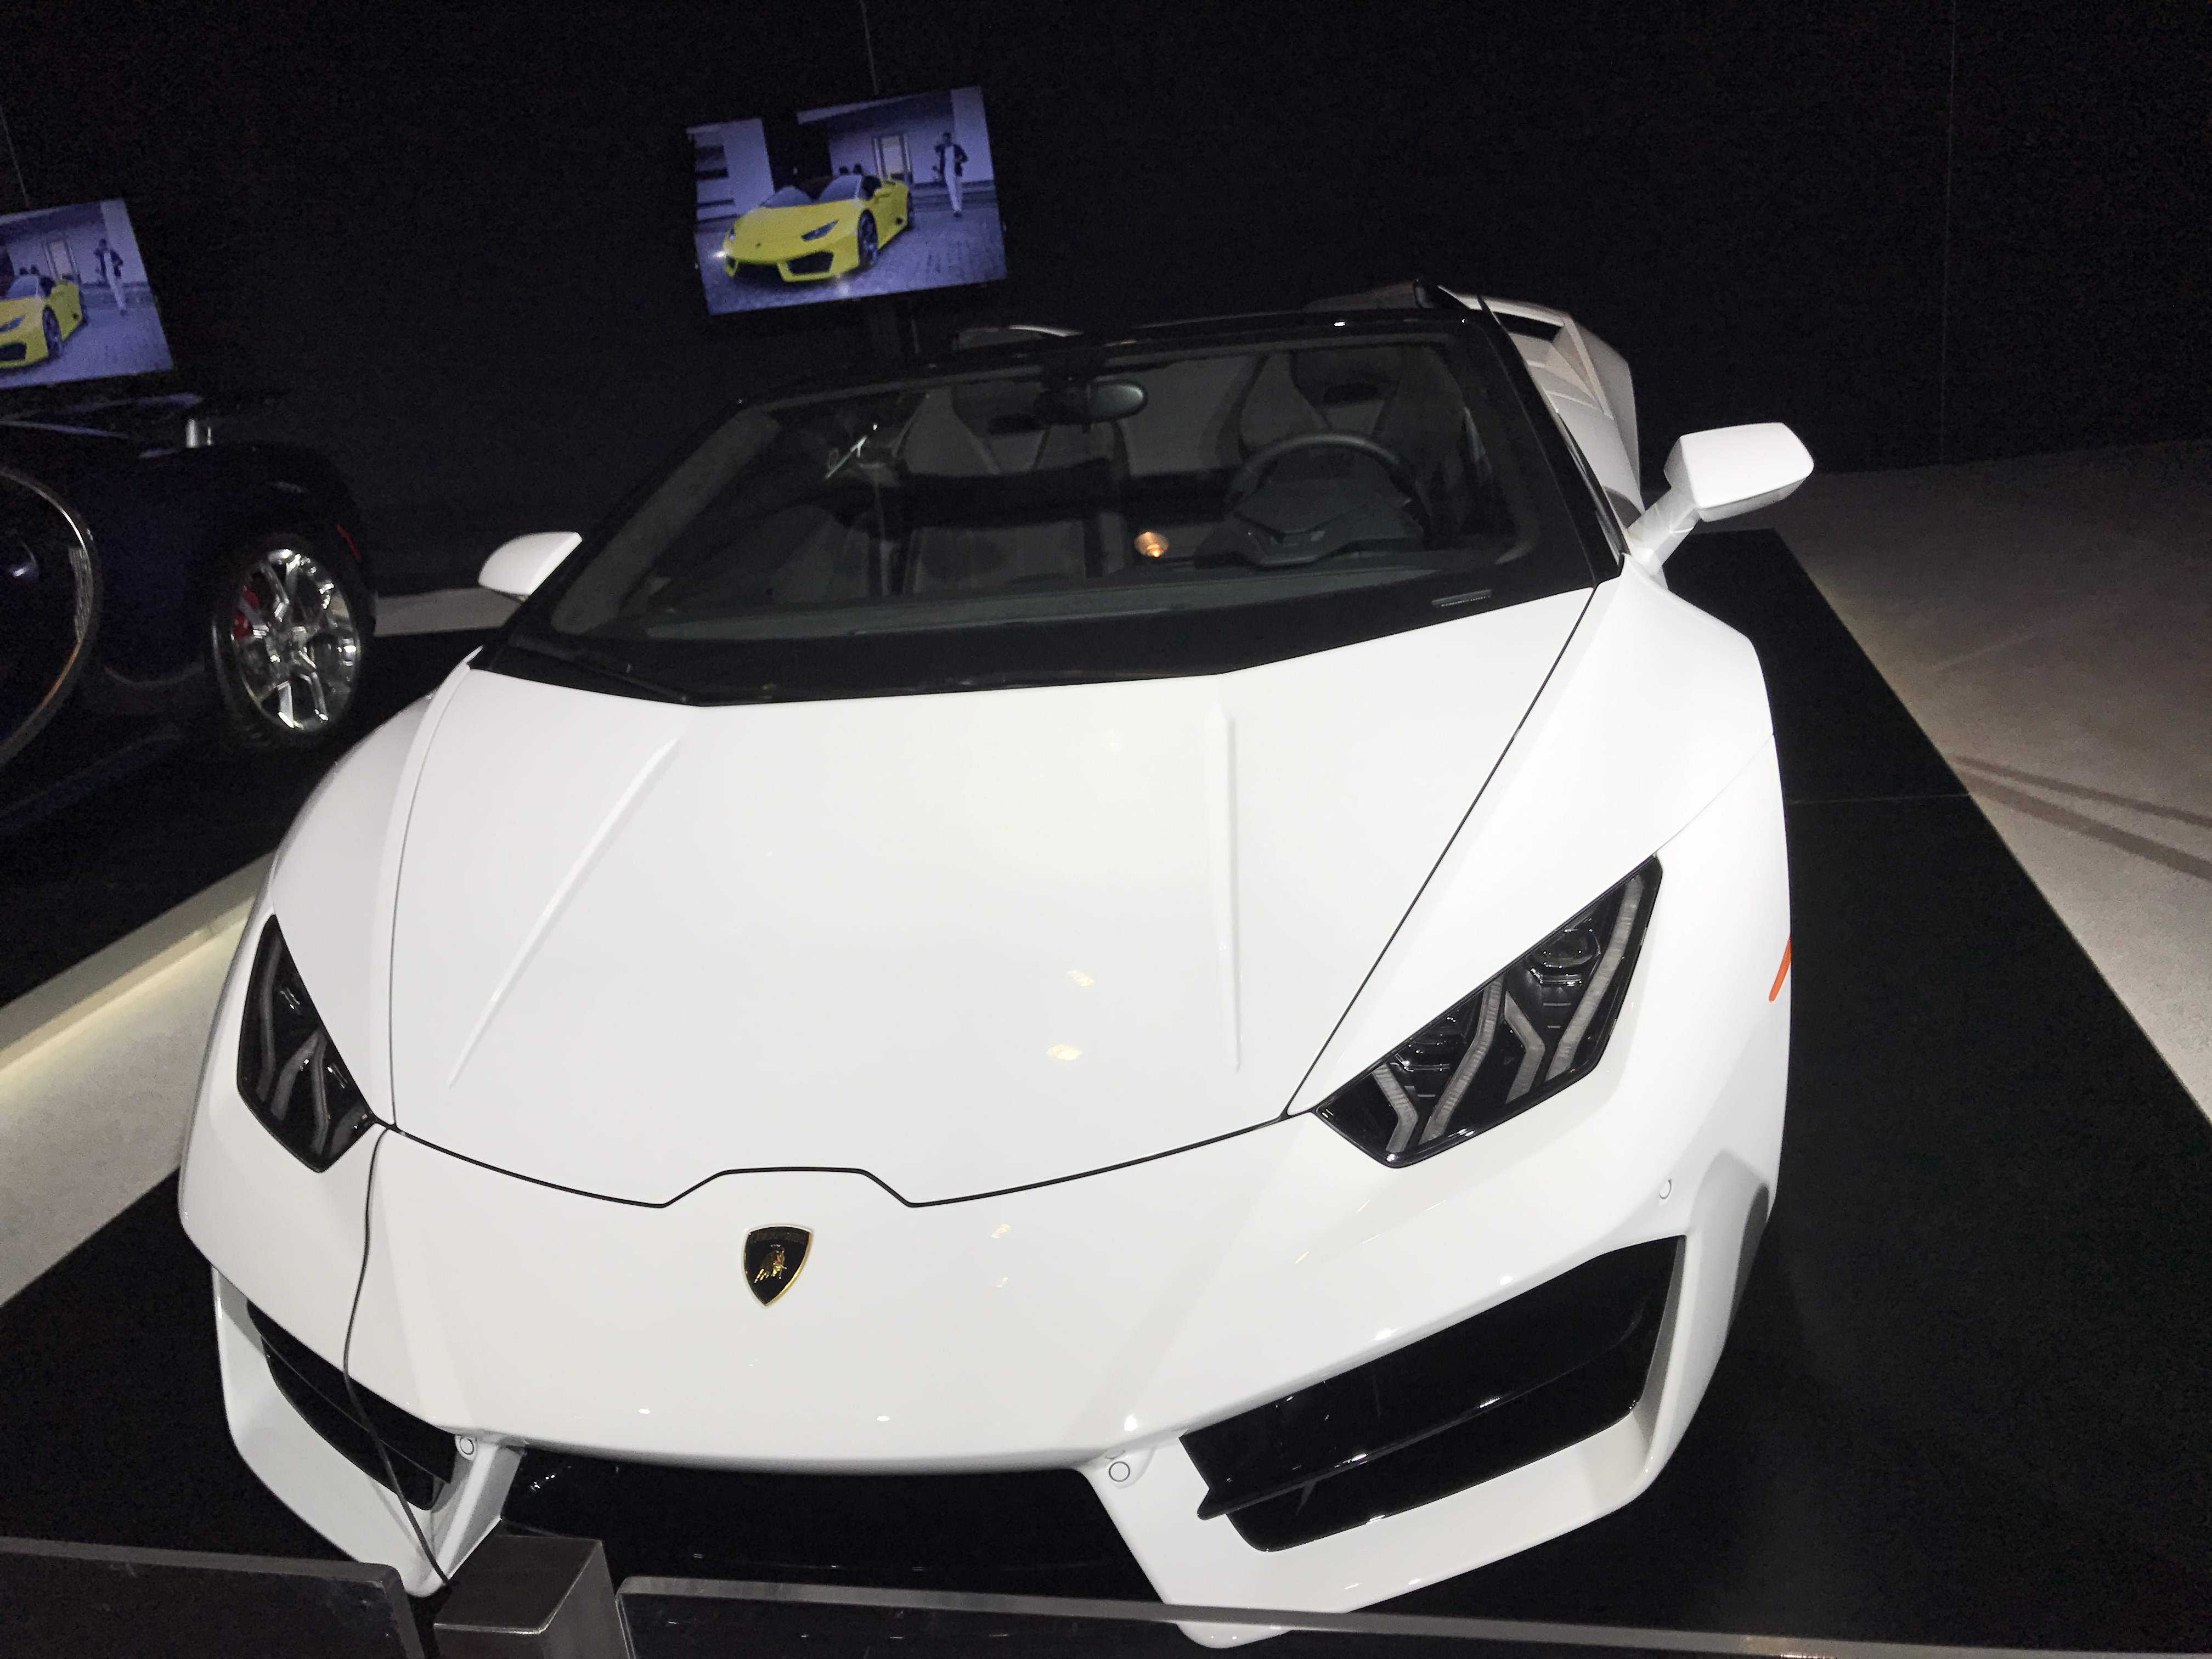 Lambo - Canadian International Autoshow #CIAS2017